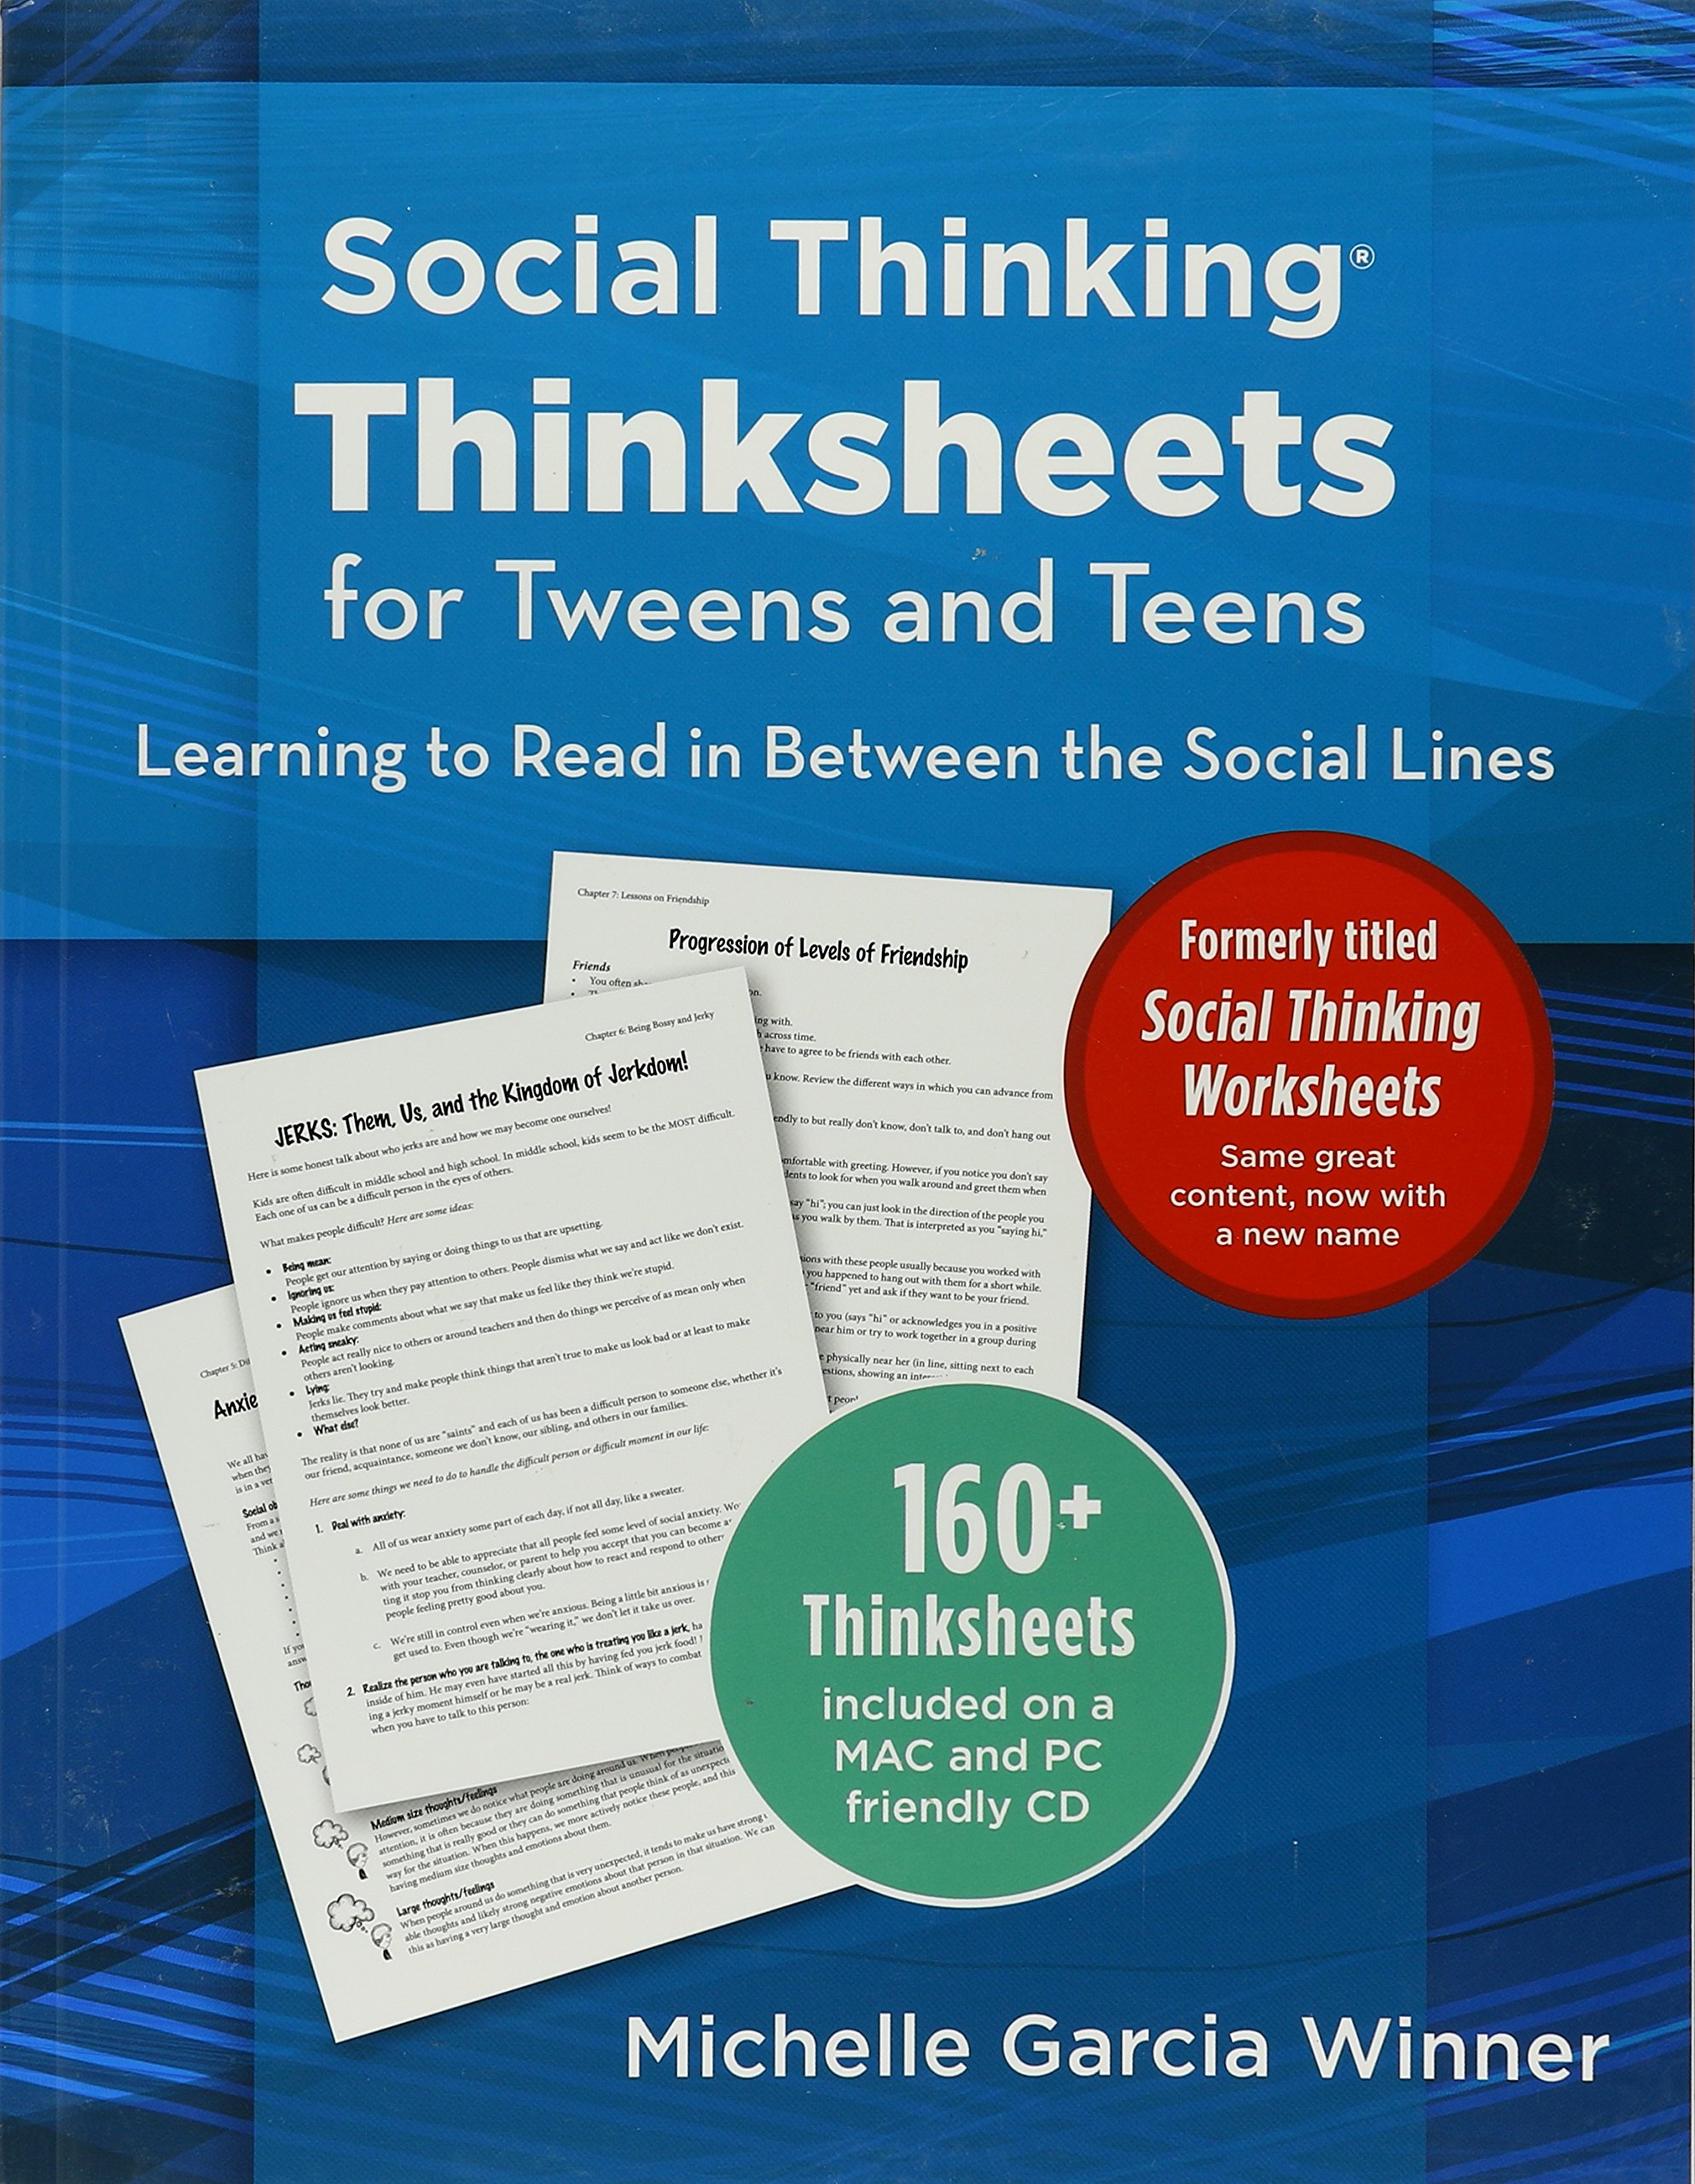 worksheet Social Thinking Worksheets Free social thinking thinksheets for tweens and teens michelle garcia winner 9781936943166 amazon com books